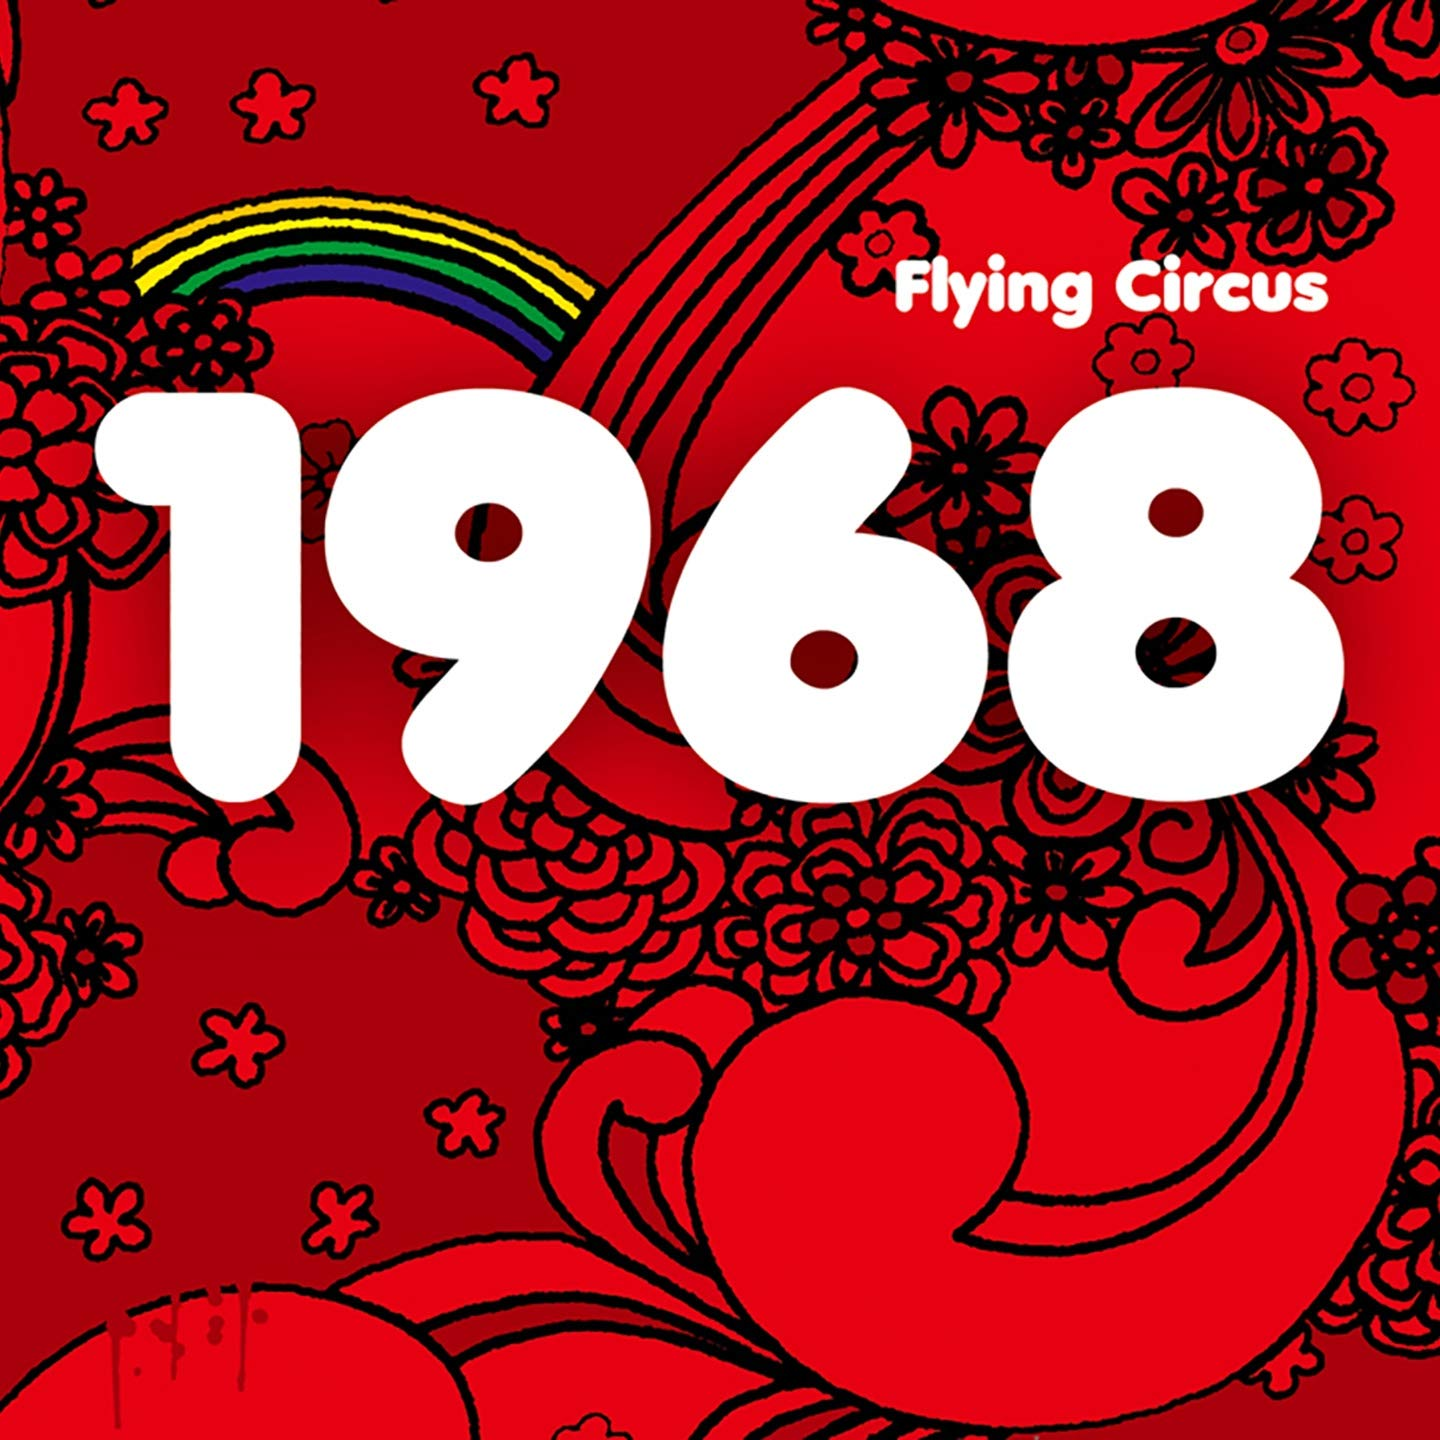 Flying Circus - 1968 (2020) [FLAC] Download